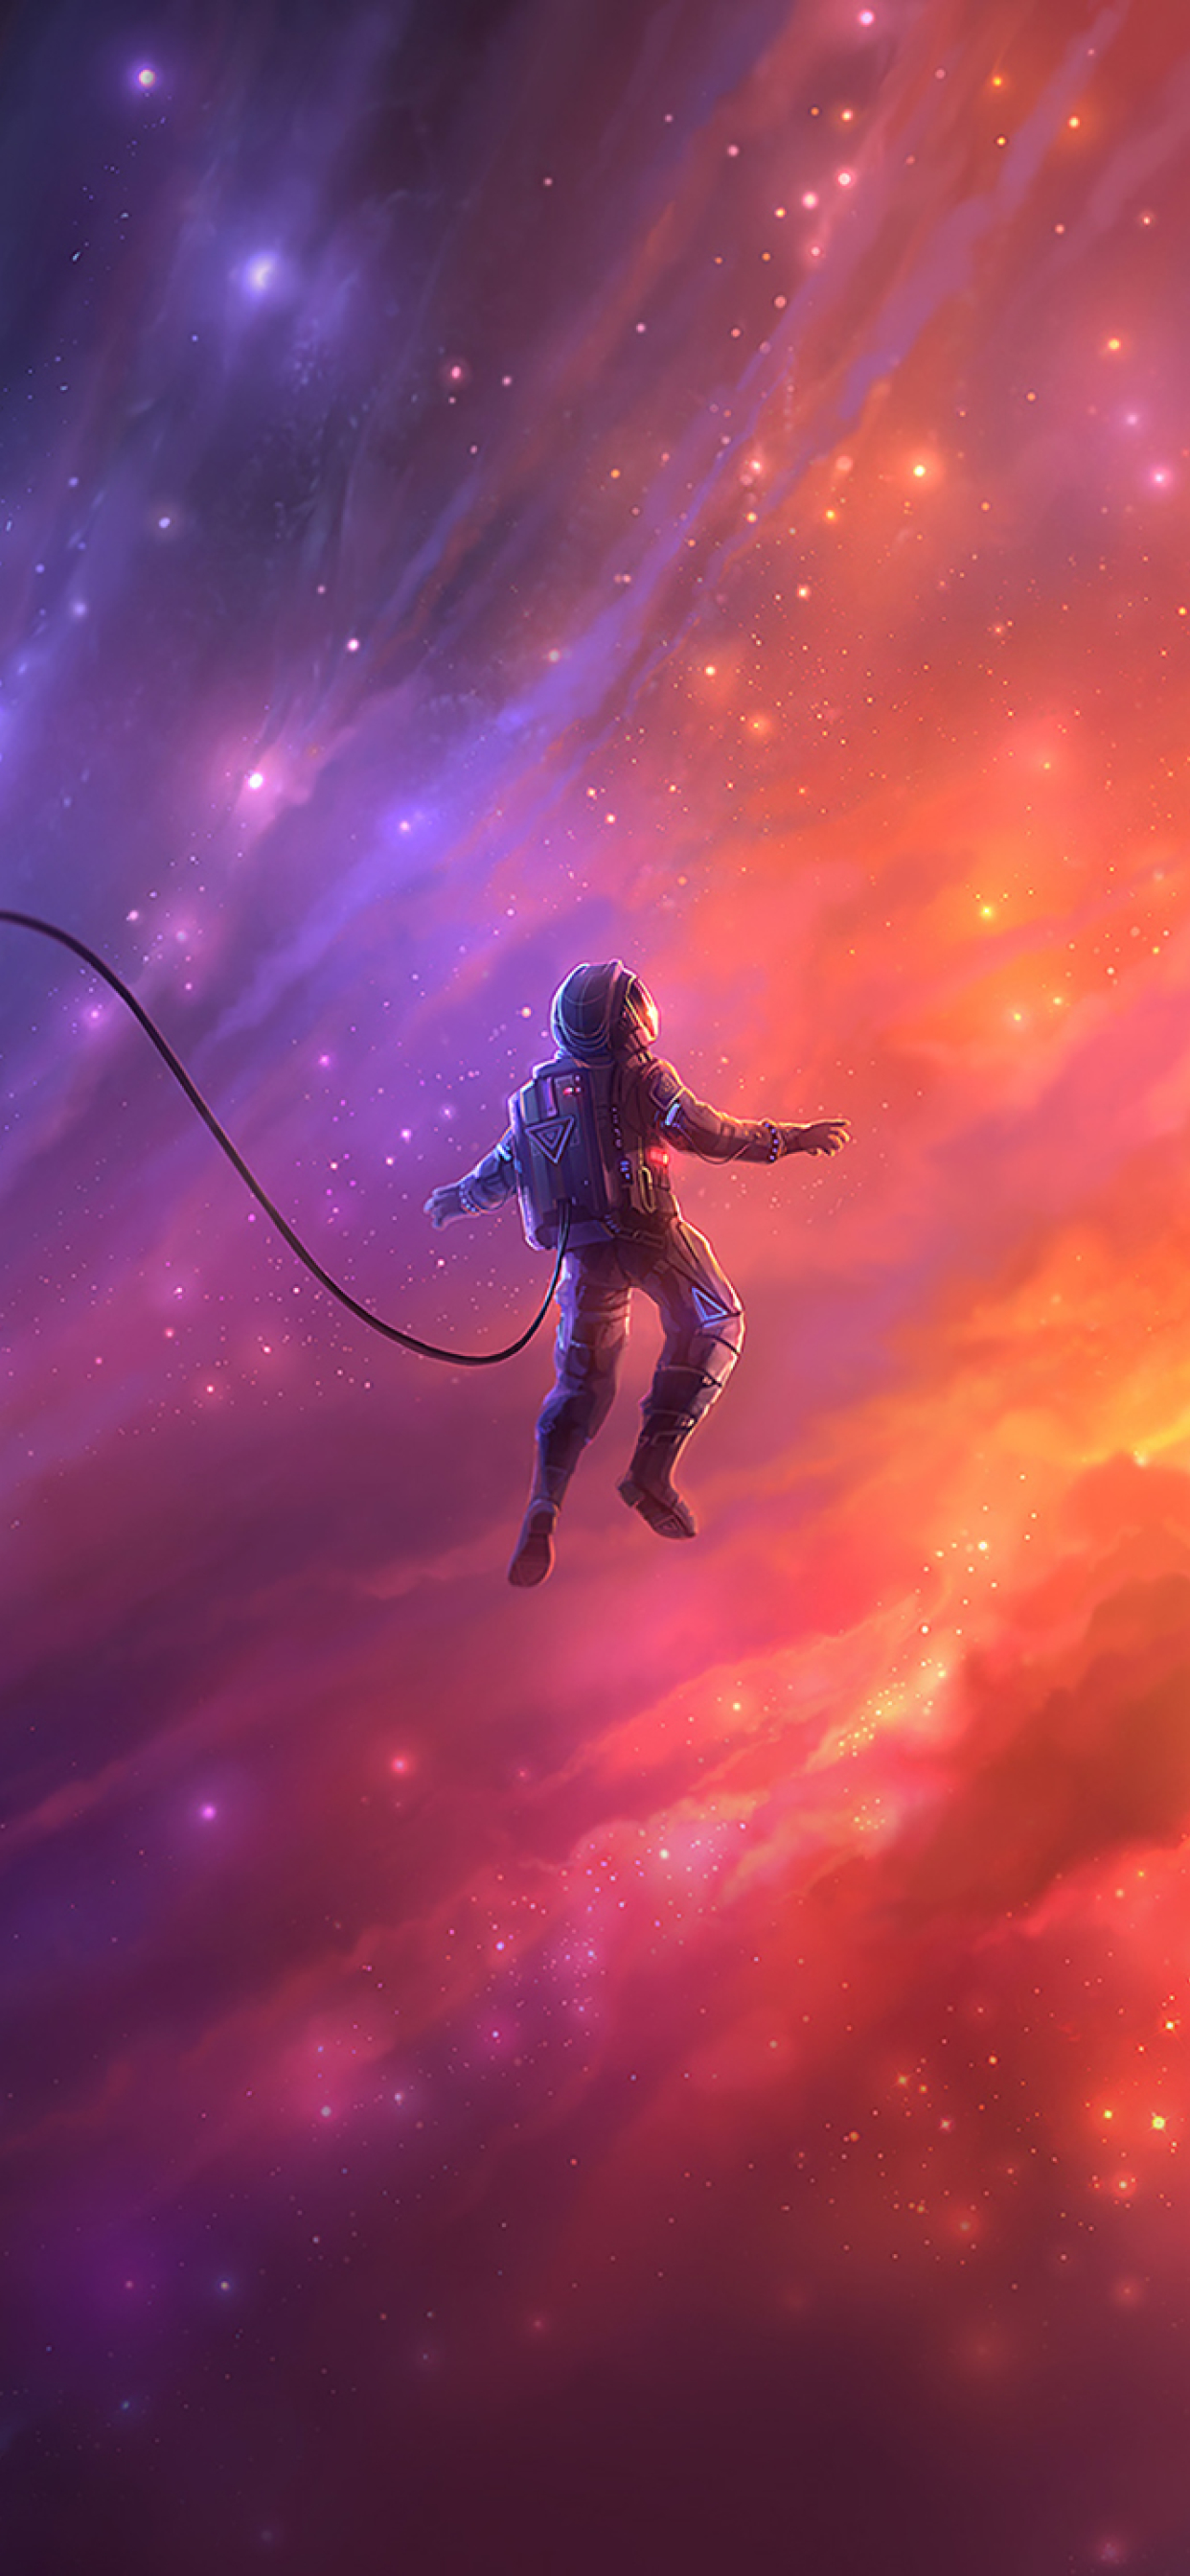 1242x2688 Astronaut In Space Iphone XS MAX Wallpaper, HD ...